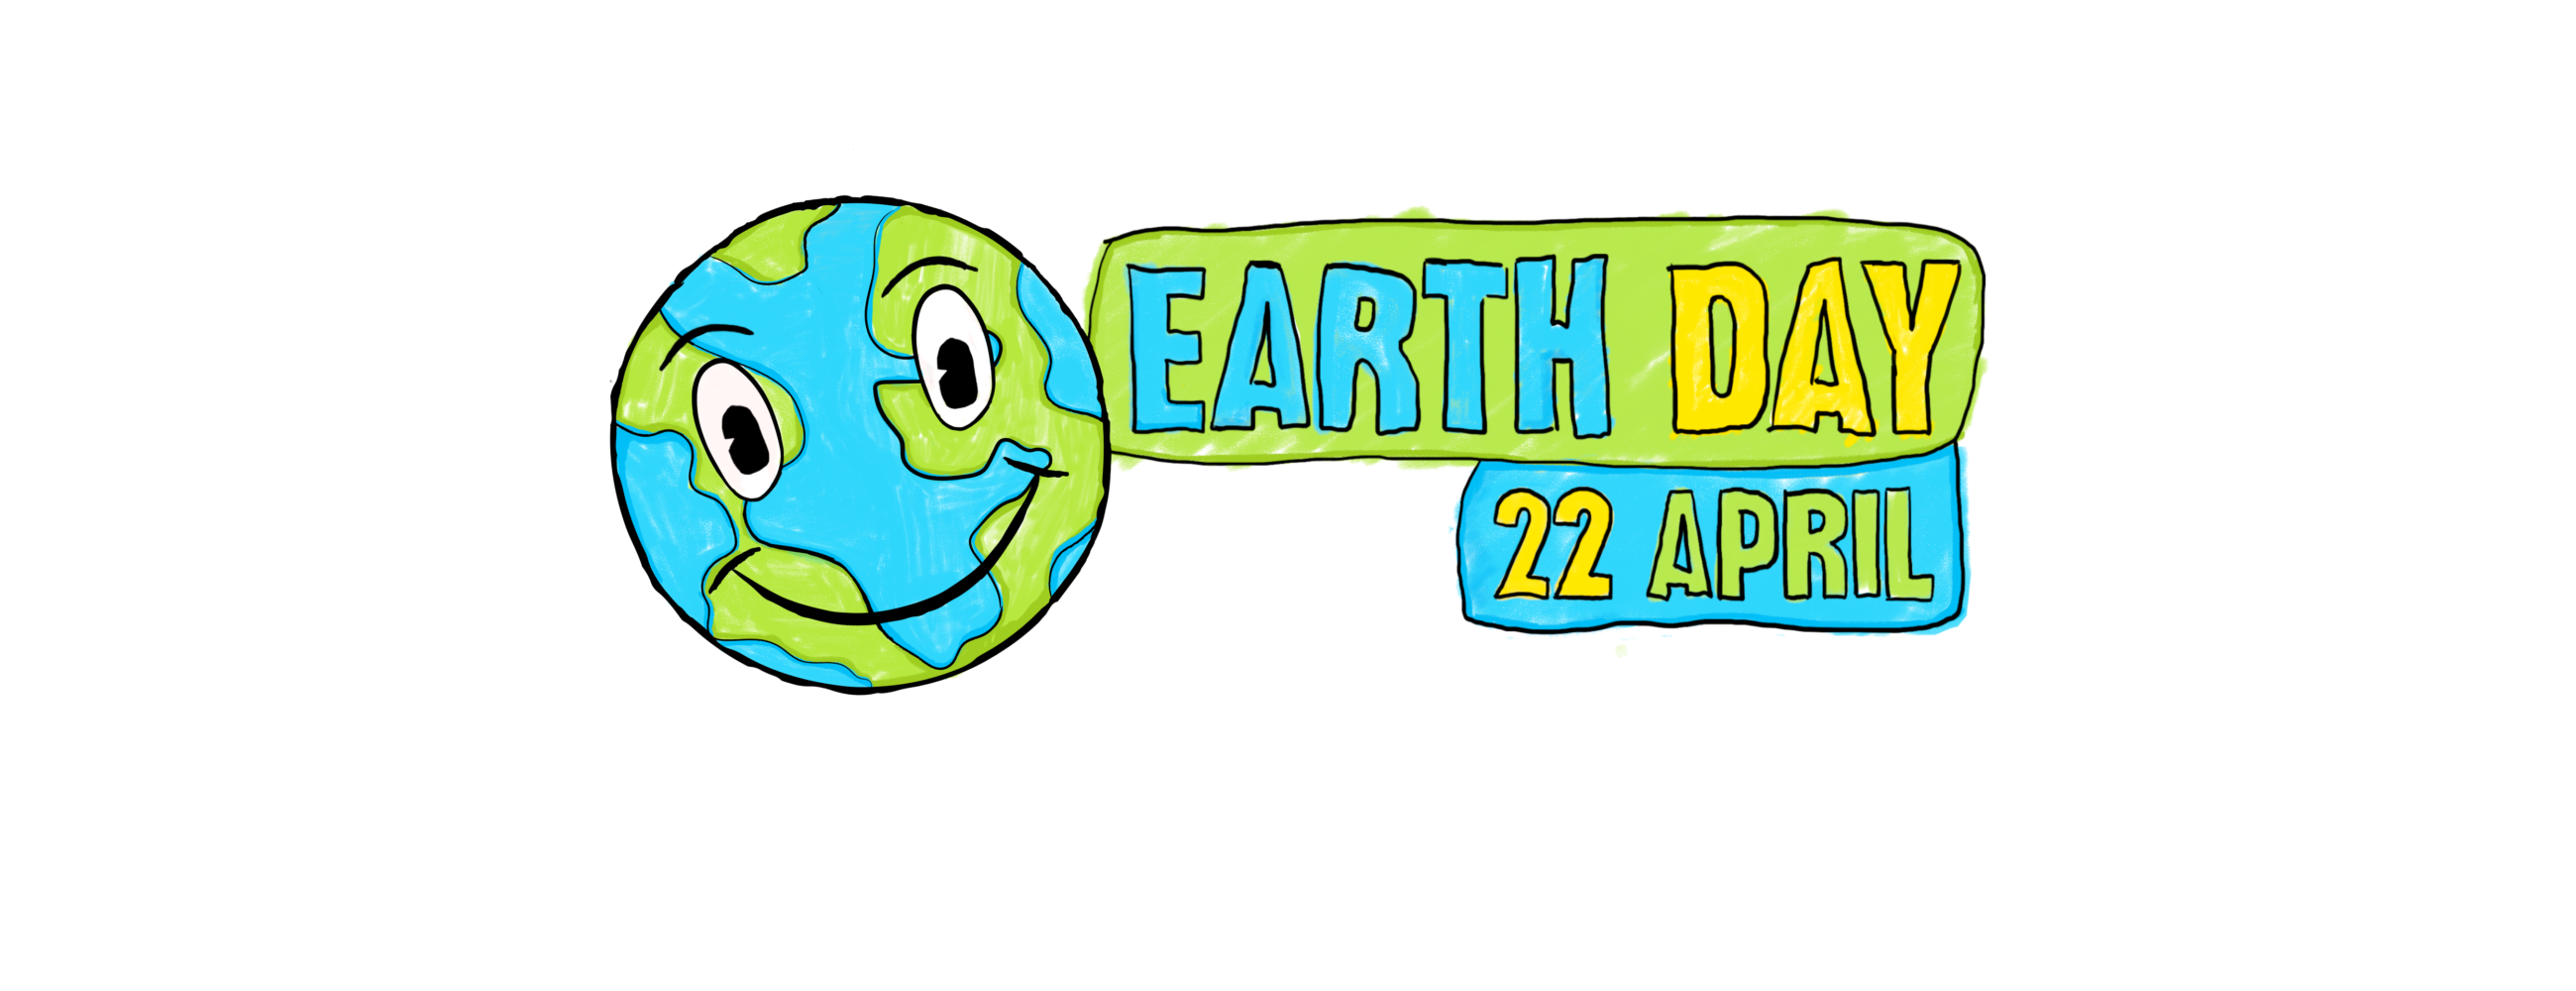 RGG_LOGO_EARTH_DAY_WITH_TEXT_Transparant-1-copy.png